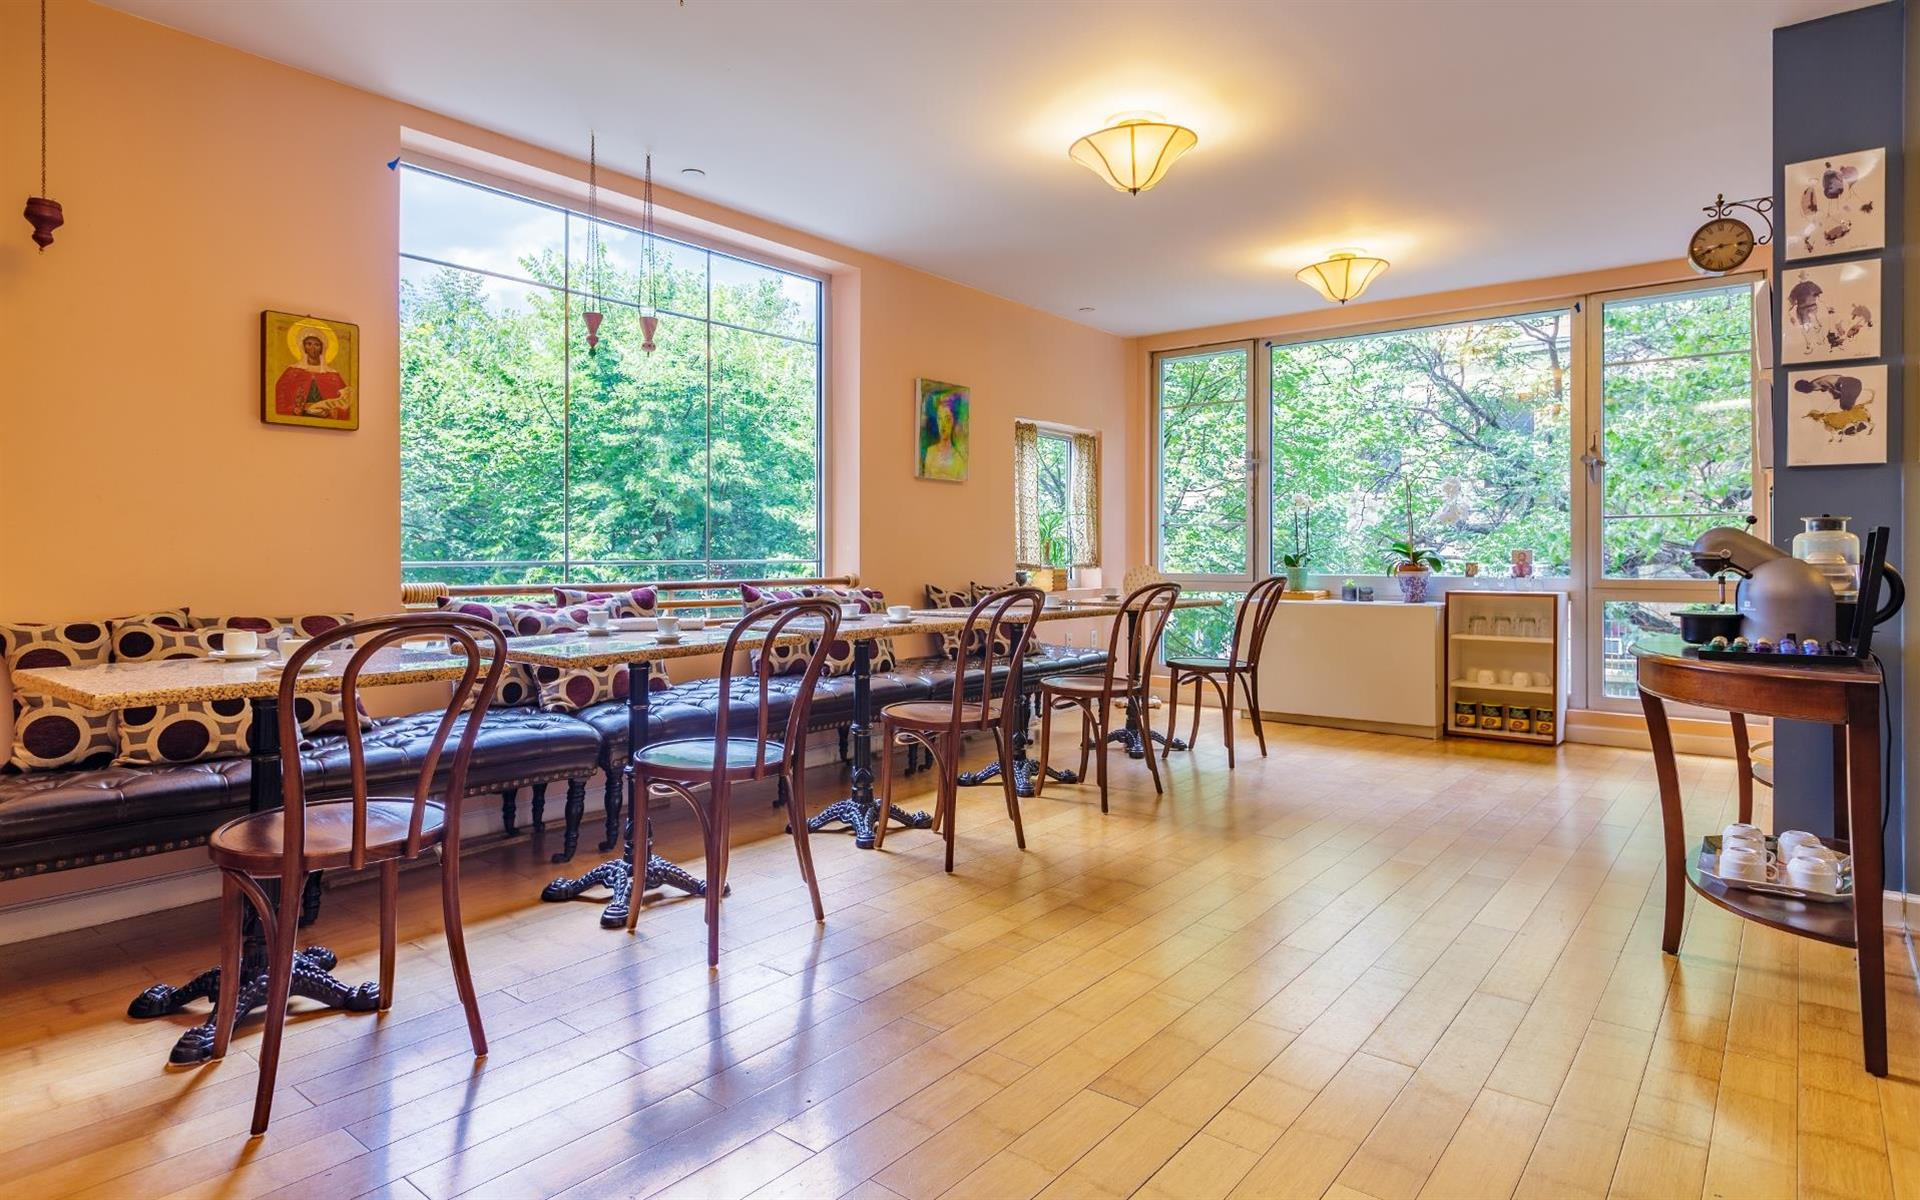 Cafe Victoria - Meetings and Events - Cafe Victoria